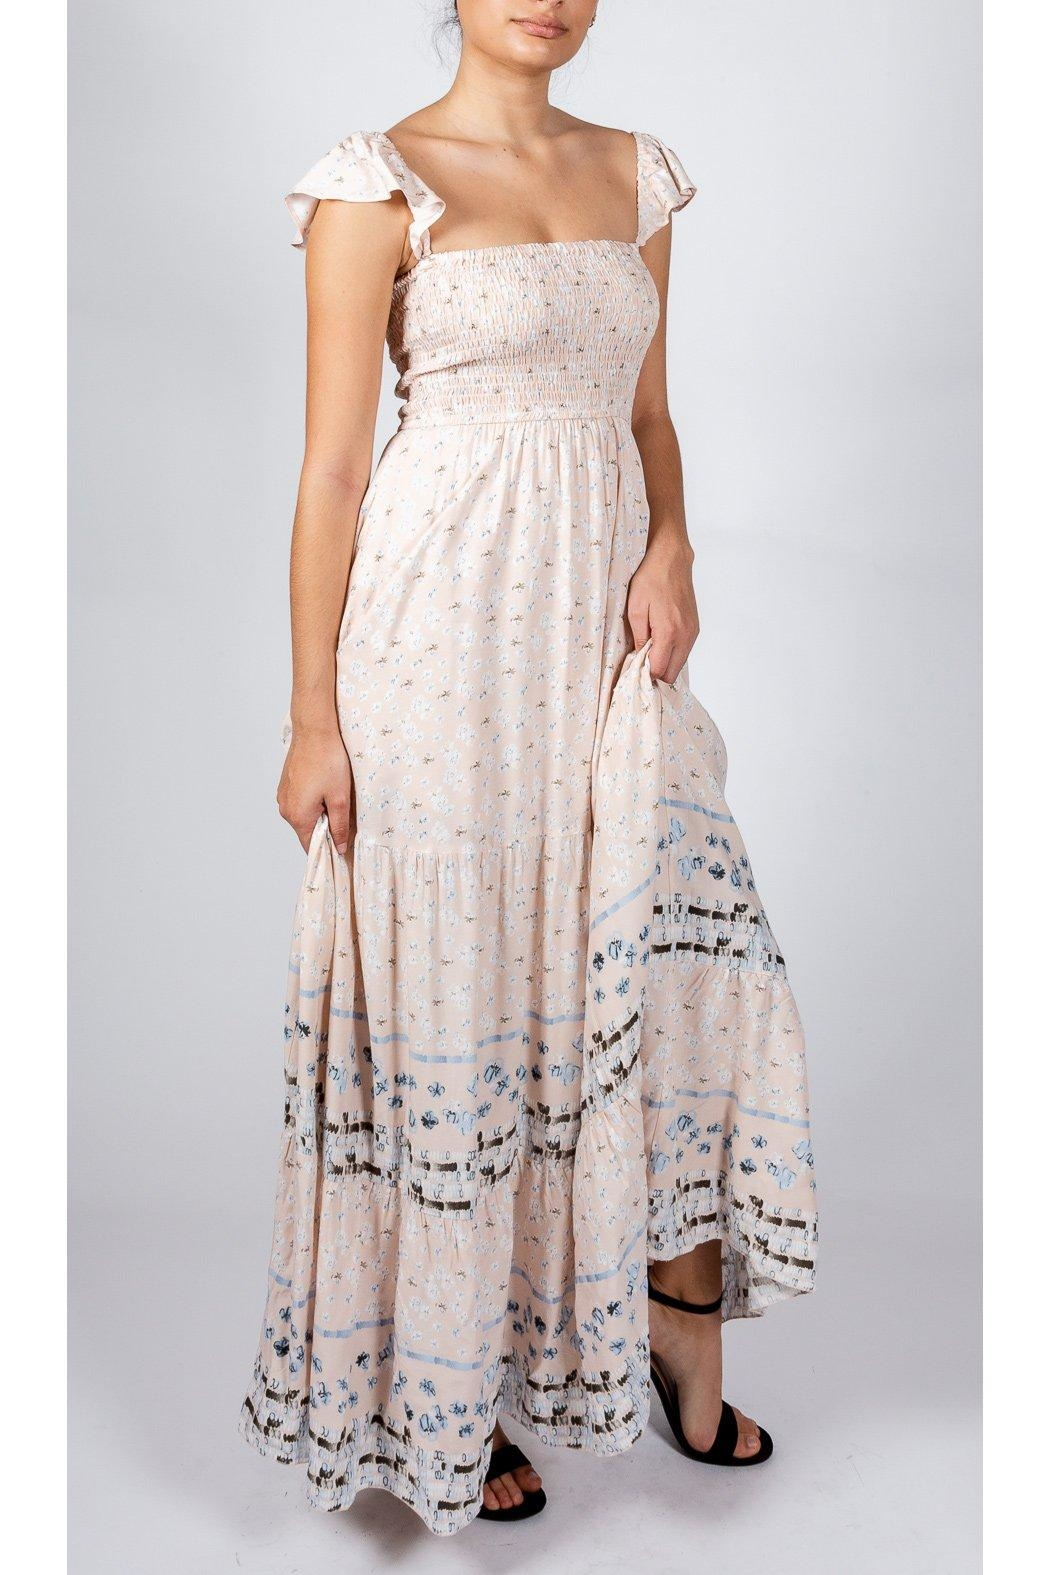 AAKAA Romantic Mixed-Print Gown - Front Full Image